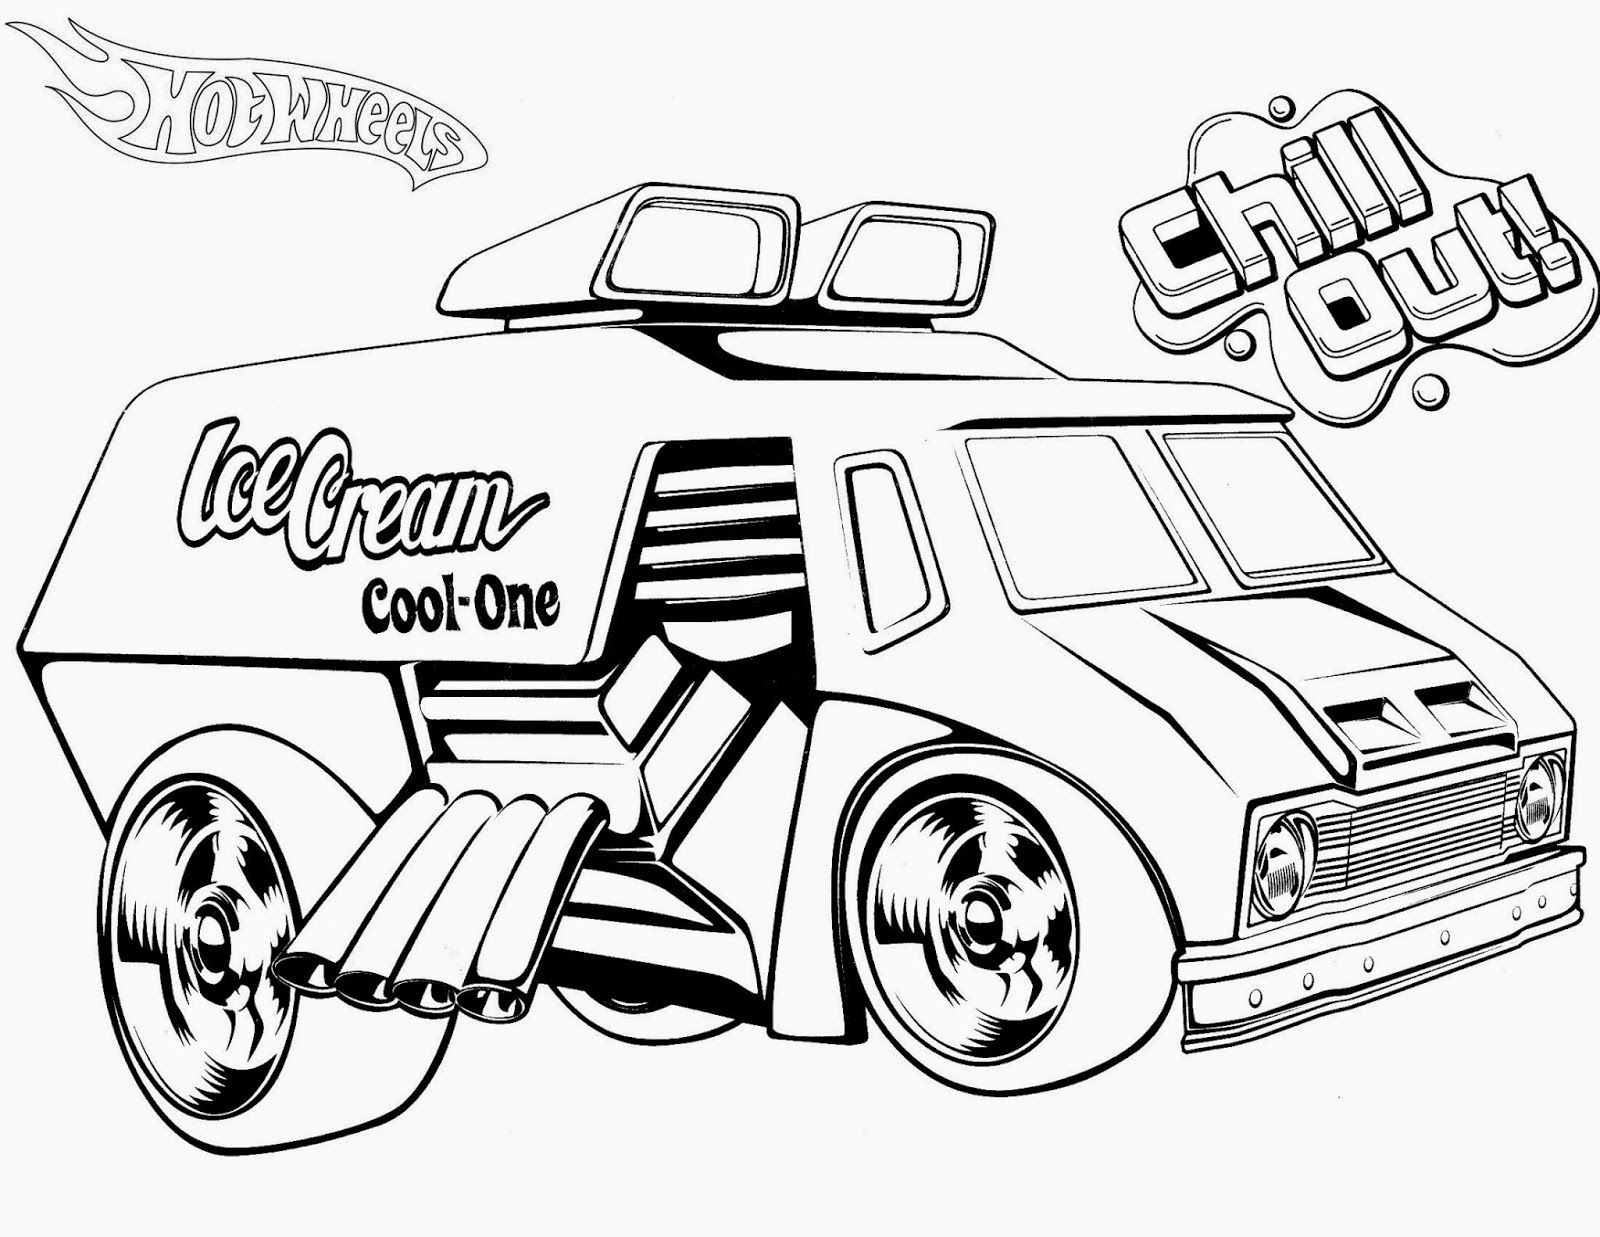 matchbox cars coloring pages - photo#6